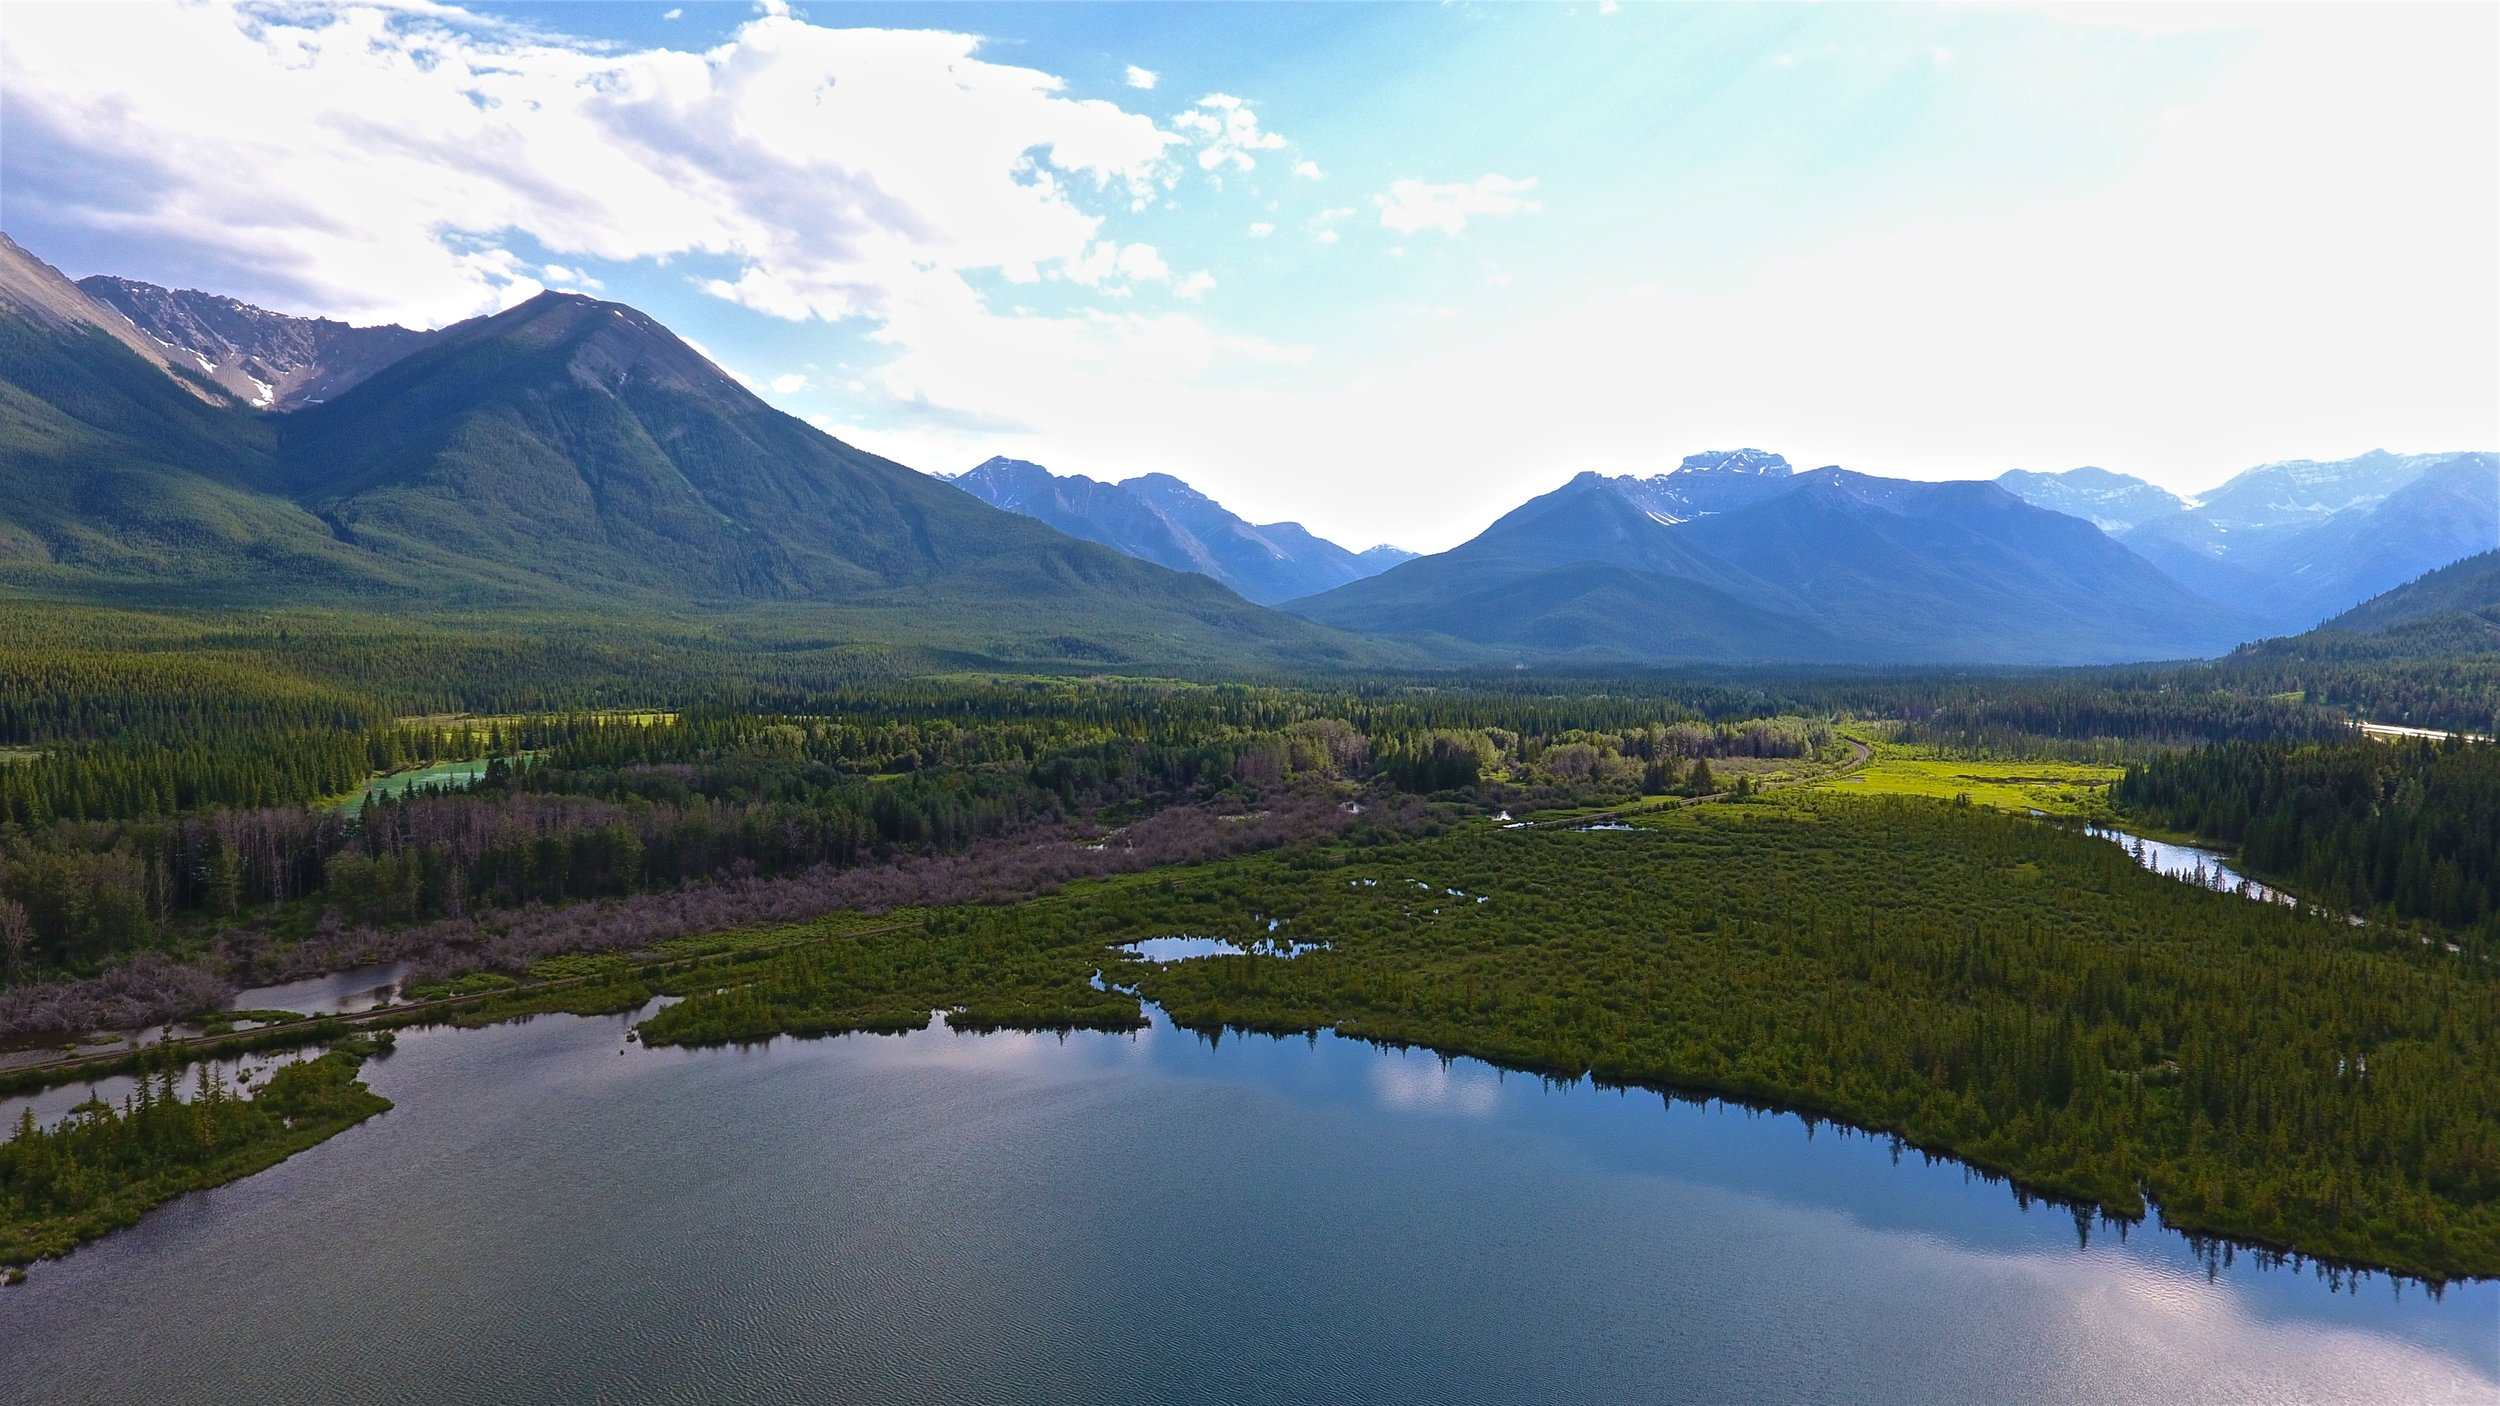 Morning view of Vermilion Lakes